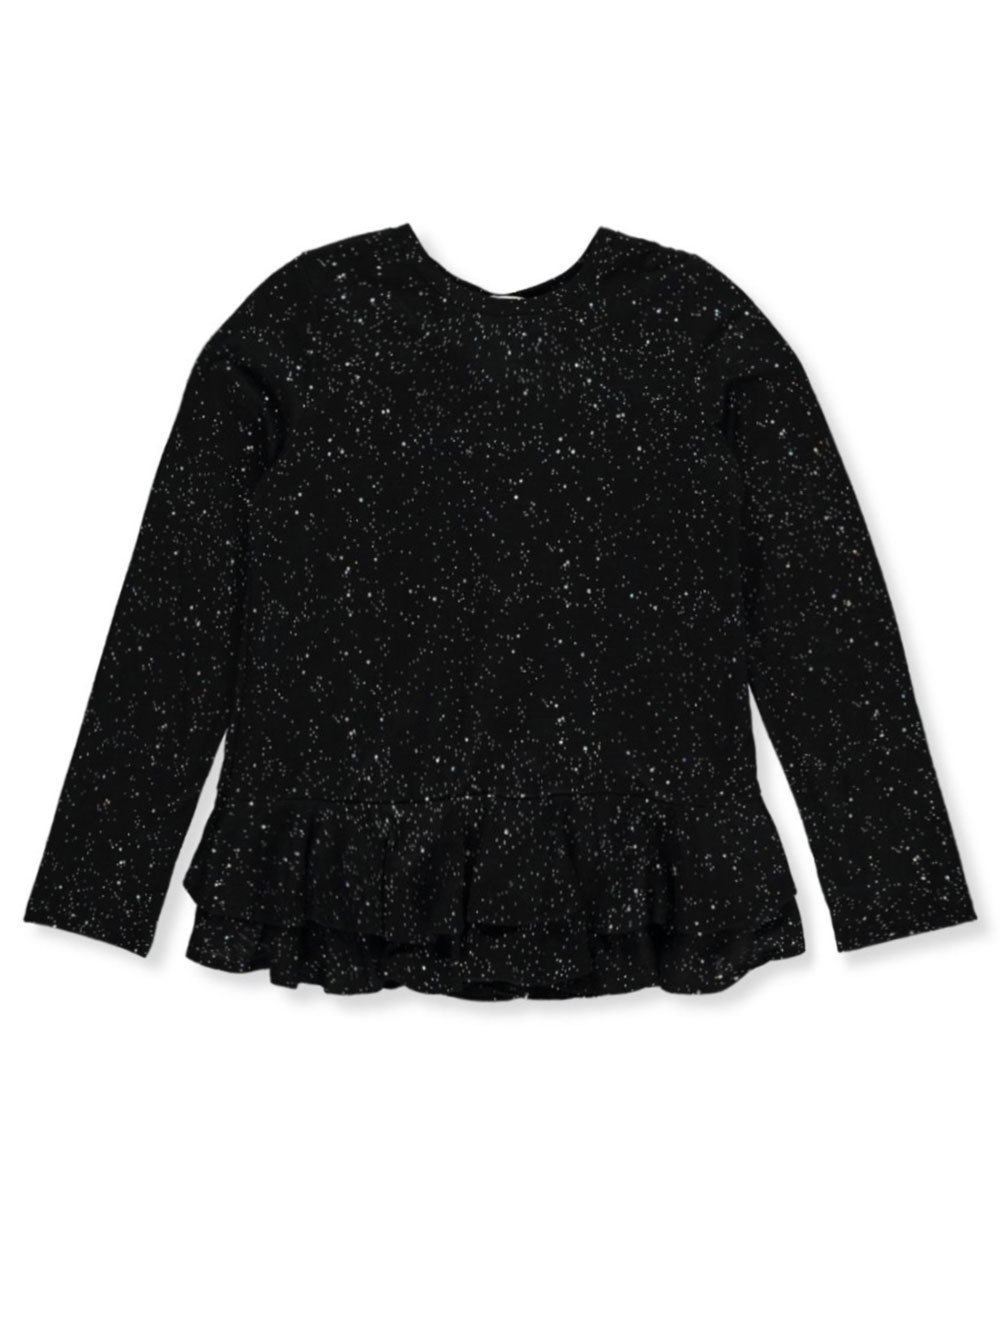 Size 12-14 Fashion Tops for Girls